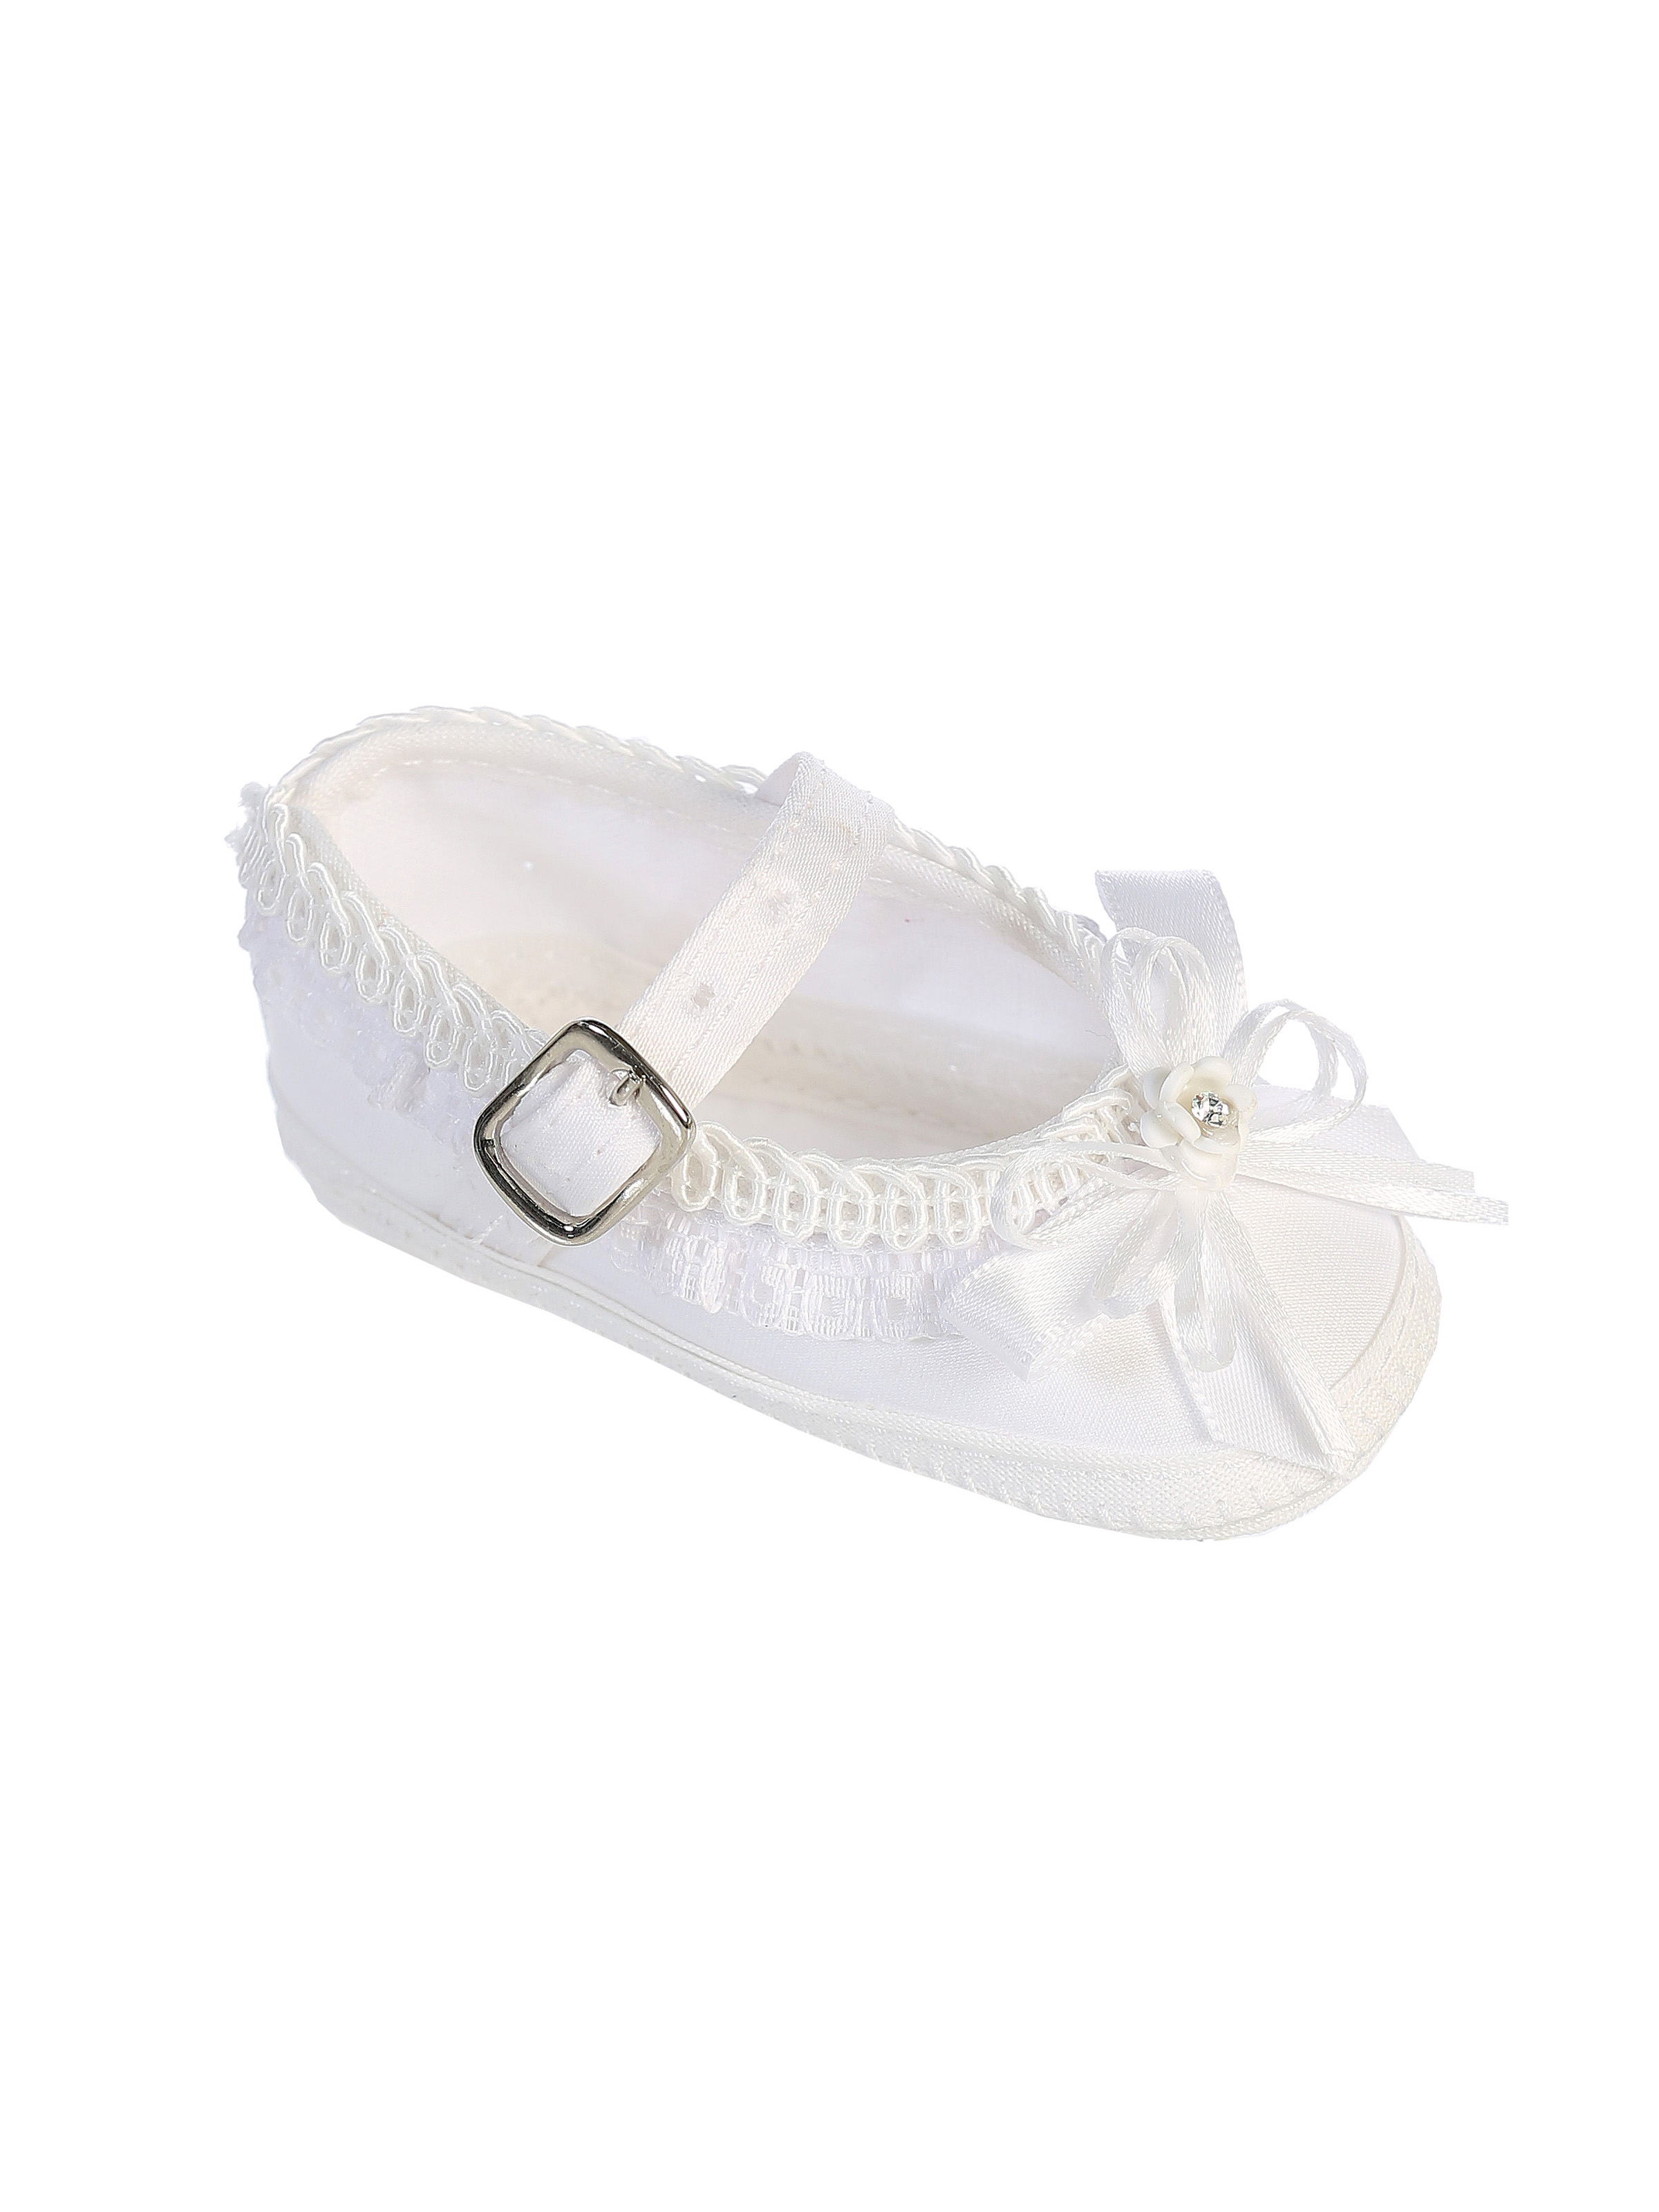 TT S3 - Girls Baptism and Christening Shoes- Style S3 White Only - Girls Christening  Shoes - Flower Girl Dresses - Flower Girl Dress For Less ba06edc58090